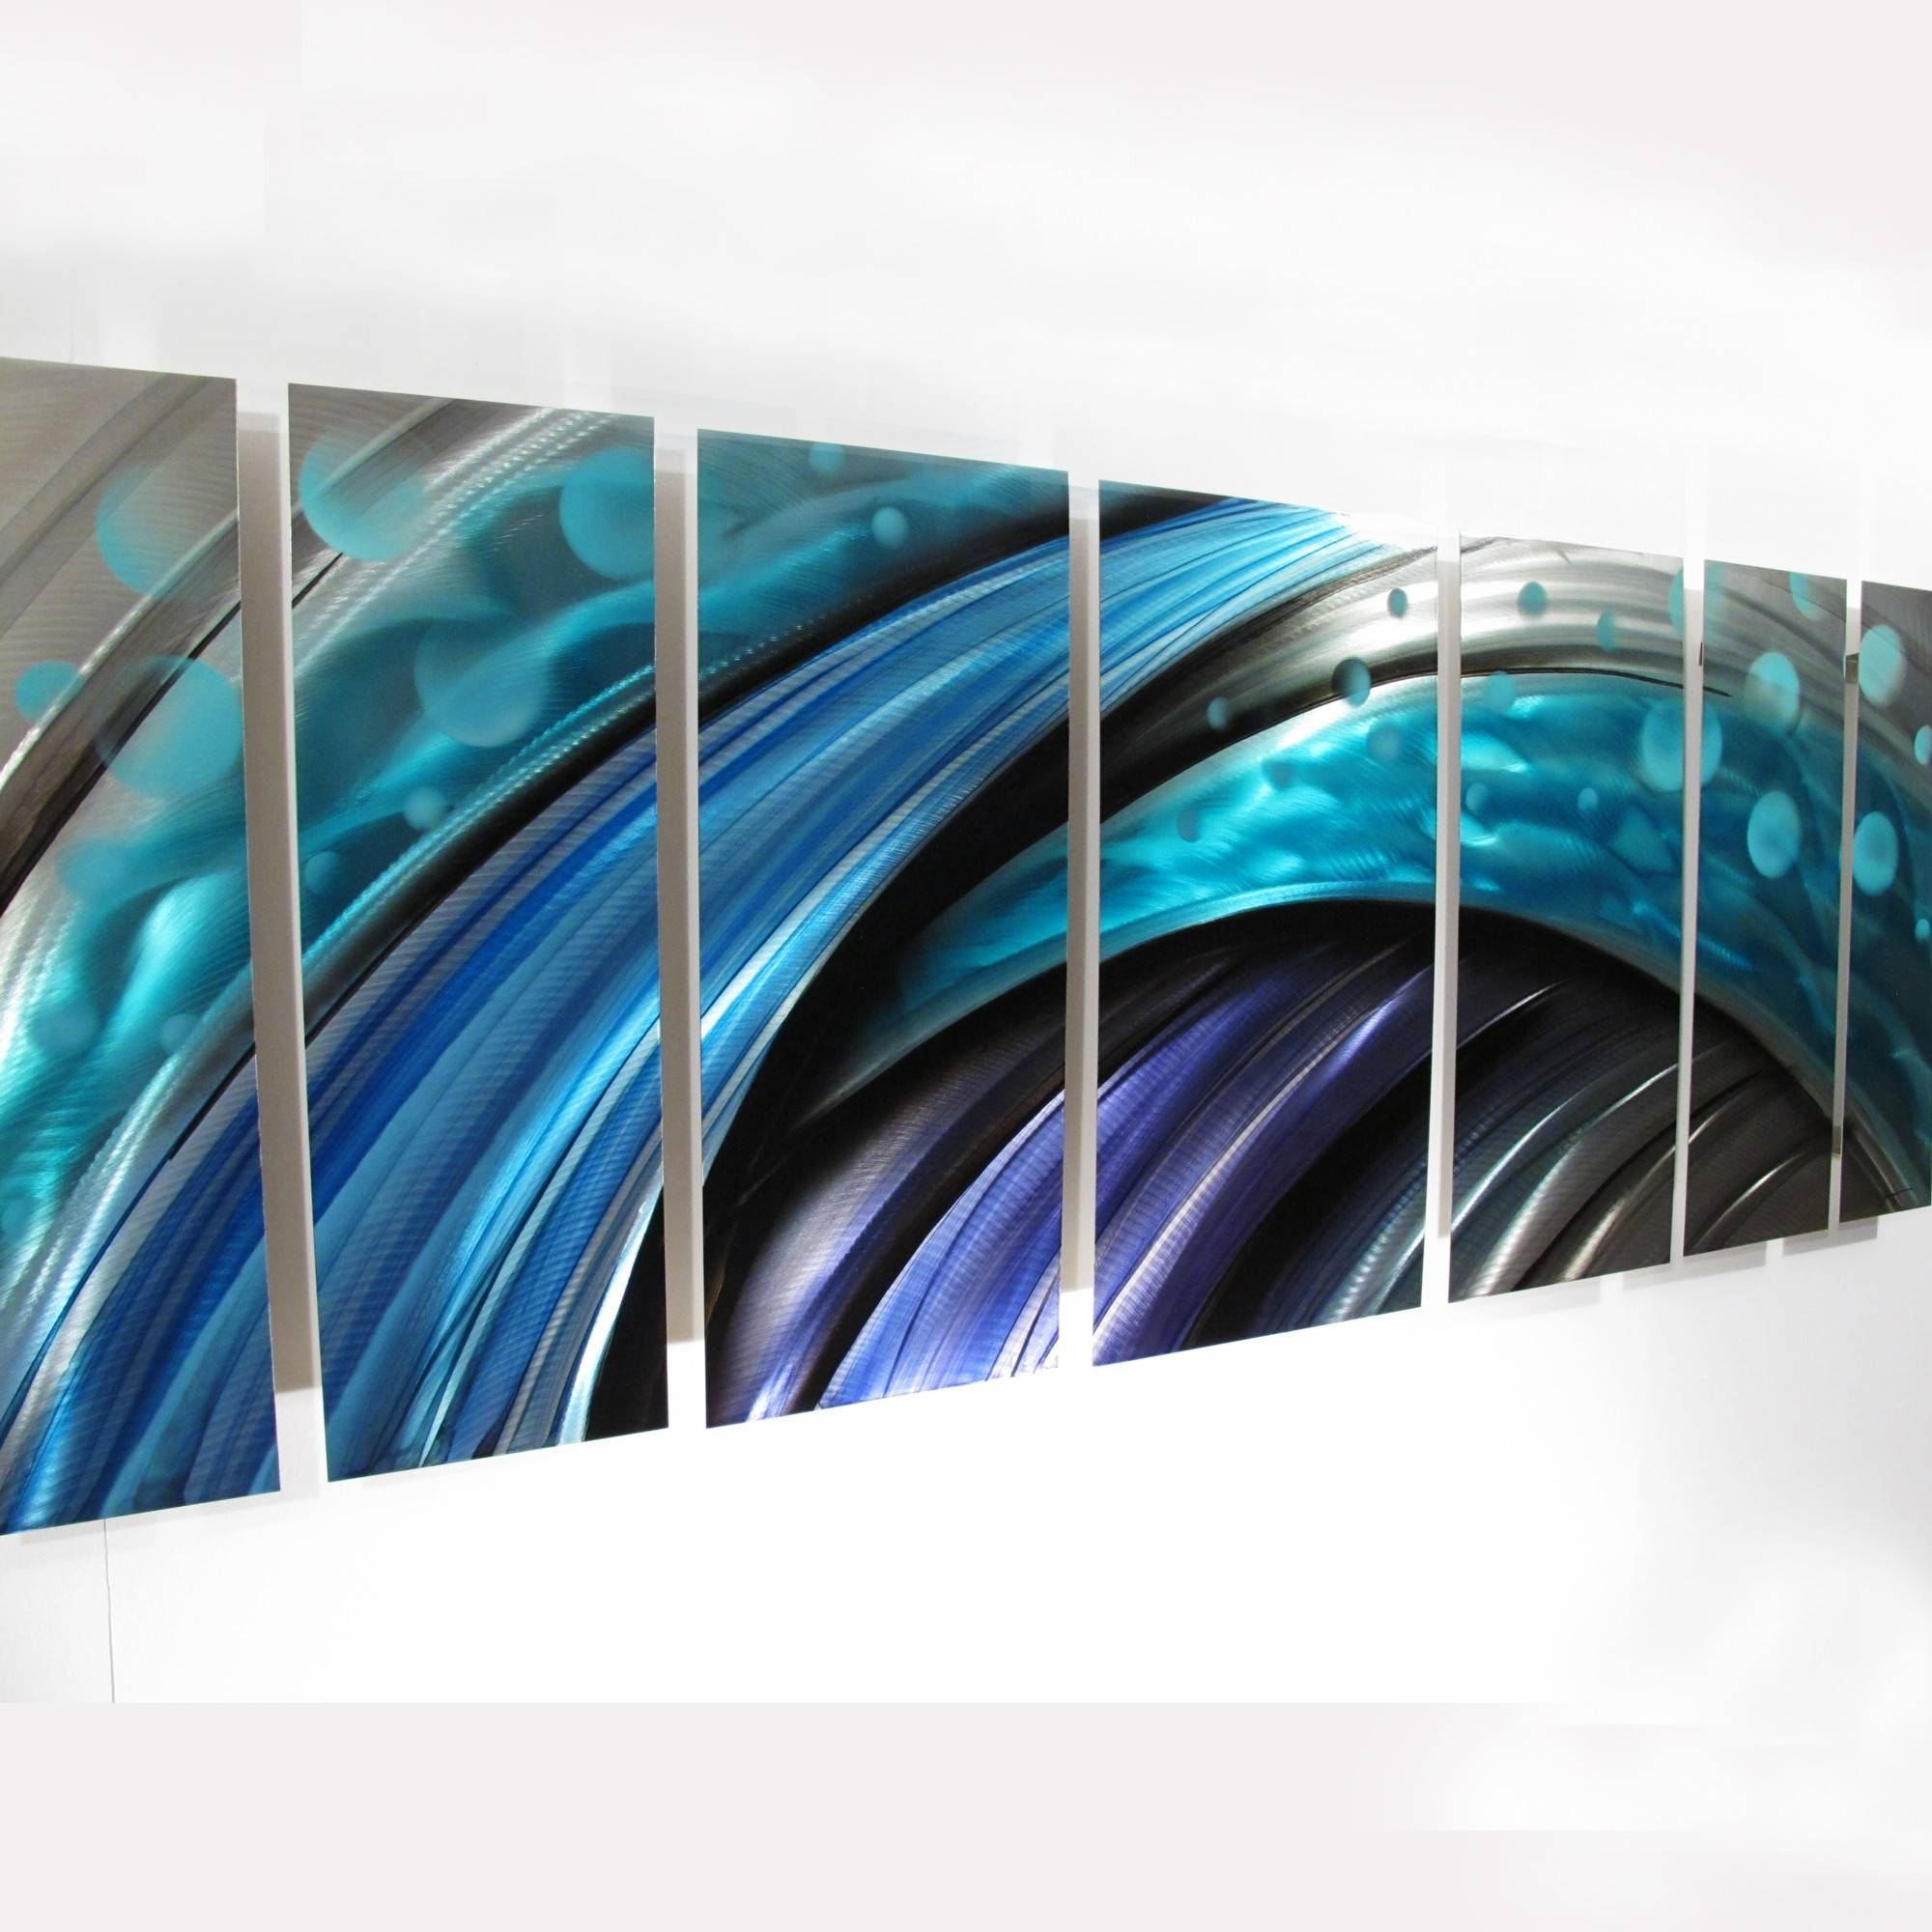 Charming Abstract Metal Wall Sculpture Uk Large Metal Wall Art Within Most Recent Cheap Metal Wall Art (Gallery 18 of 20)